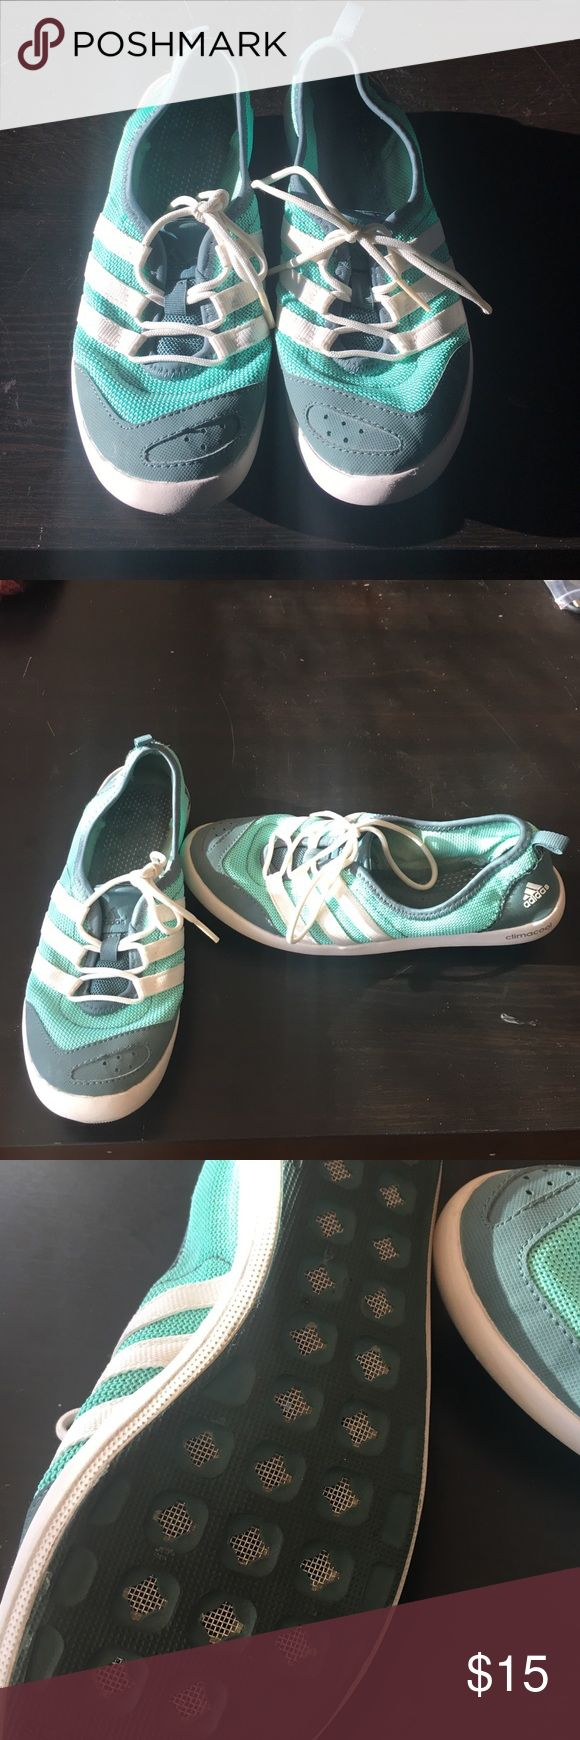 Adidas Boat Shoe Size 7 Adidas boat shoe size 7. Only worn a few times. Great for boating water sports and really comfortable to walk in. They make a good travel shoe for a tropical destination. They are mesh so they breathe well in wet environments . Adidas Shoes Sneakers